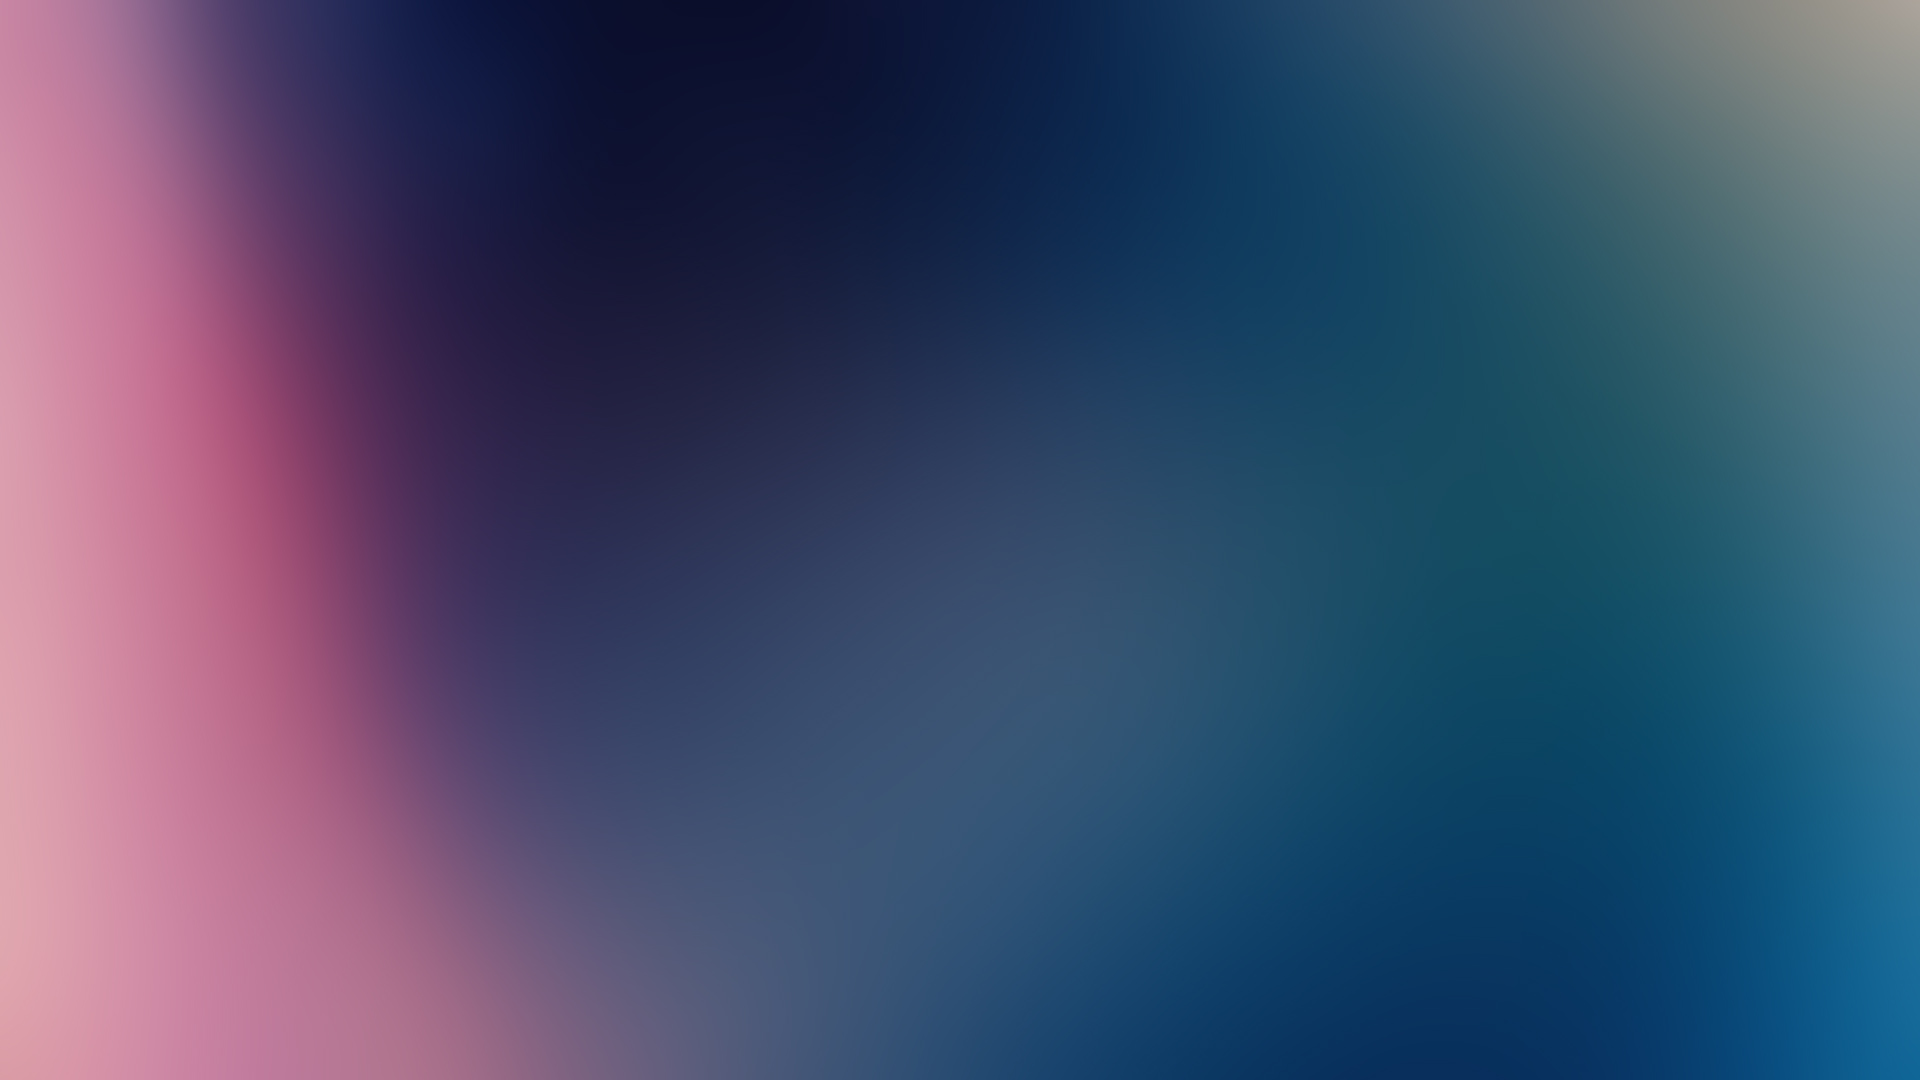 Blur Background Hd Artist Wallpapers Images